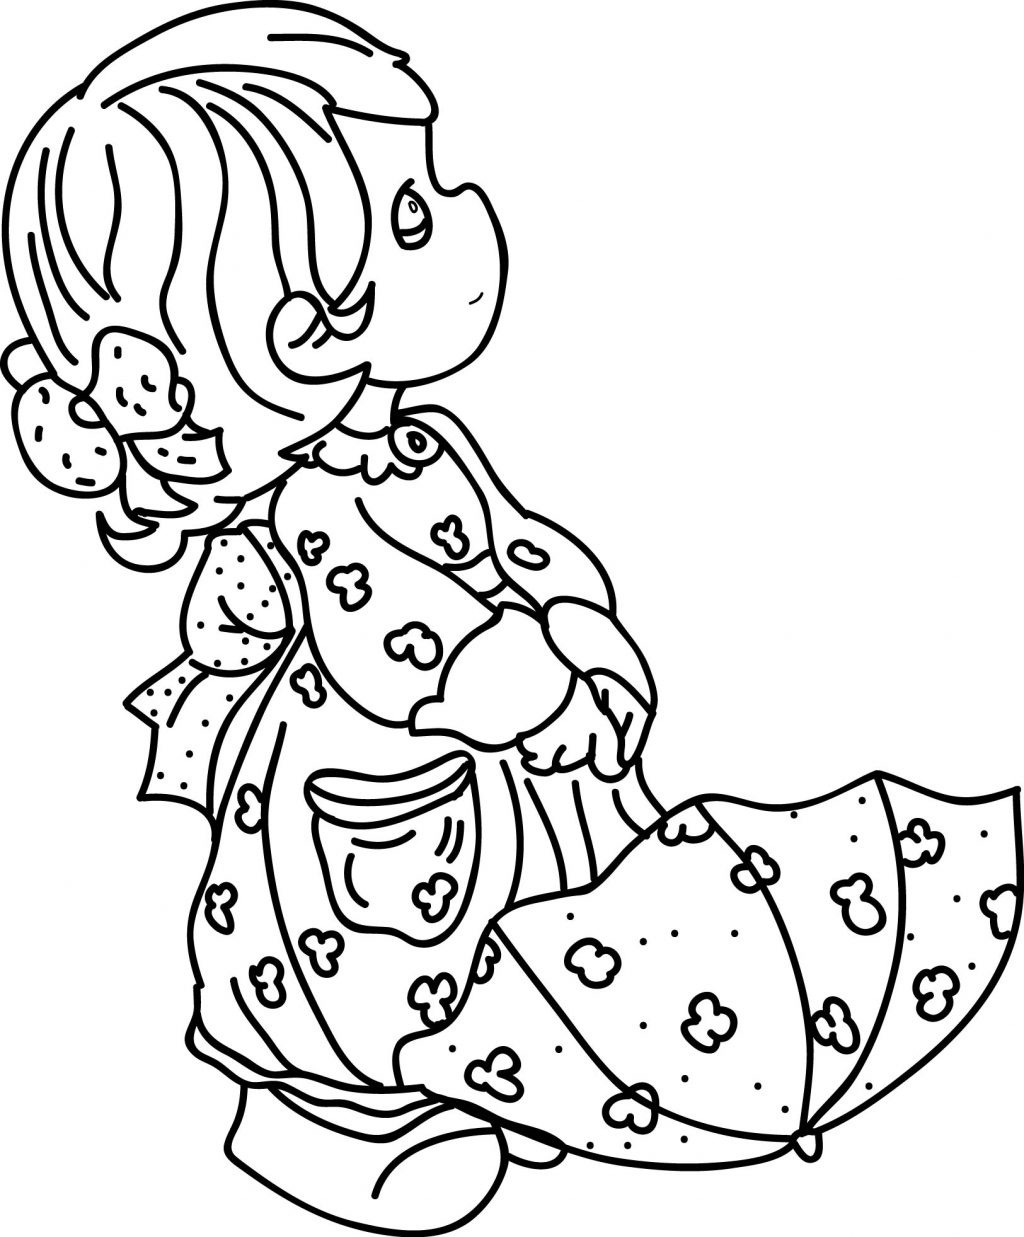 little girl coloring pictures cute girl colorable line art free clip art little coloring girl pictures